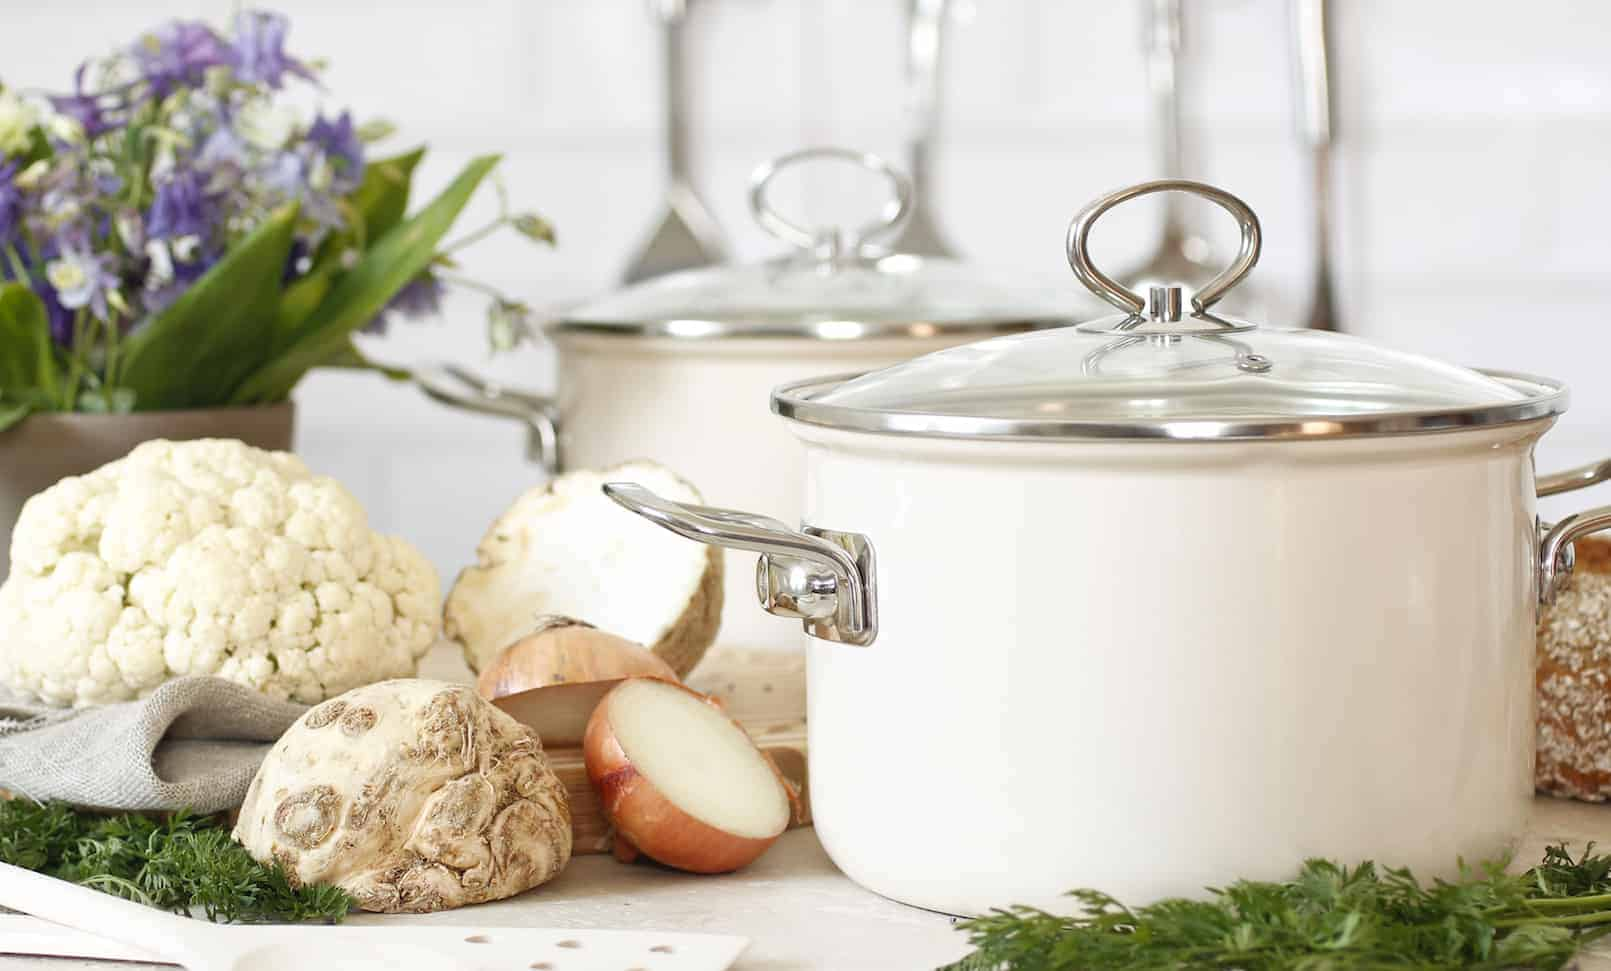 How to Take Care of Your High-Quality Pots and Pans - Consider Material Coated